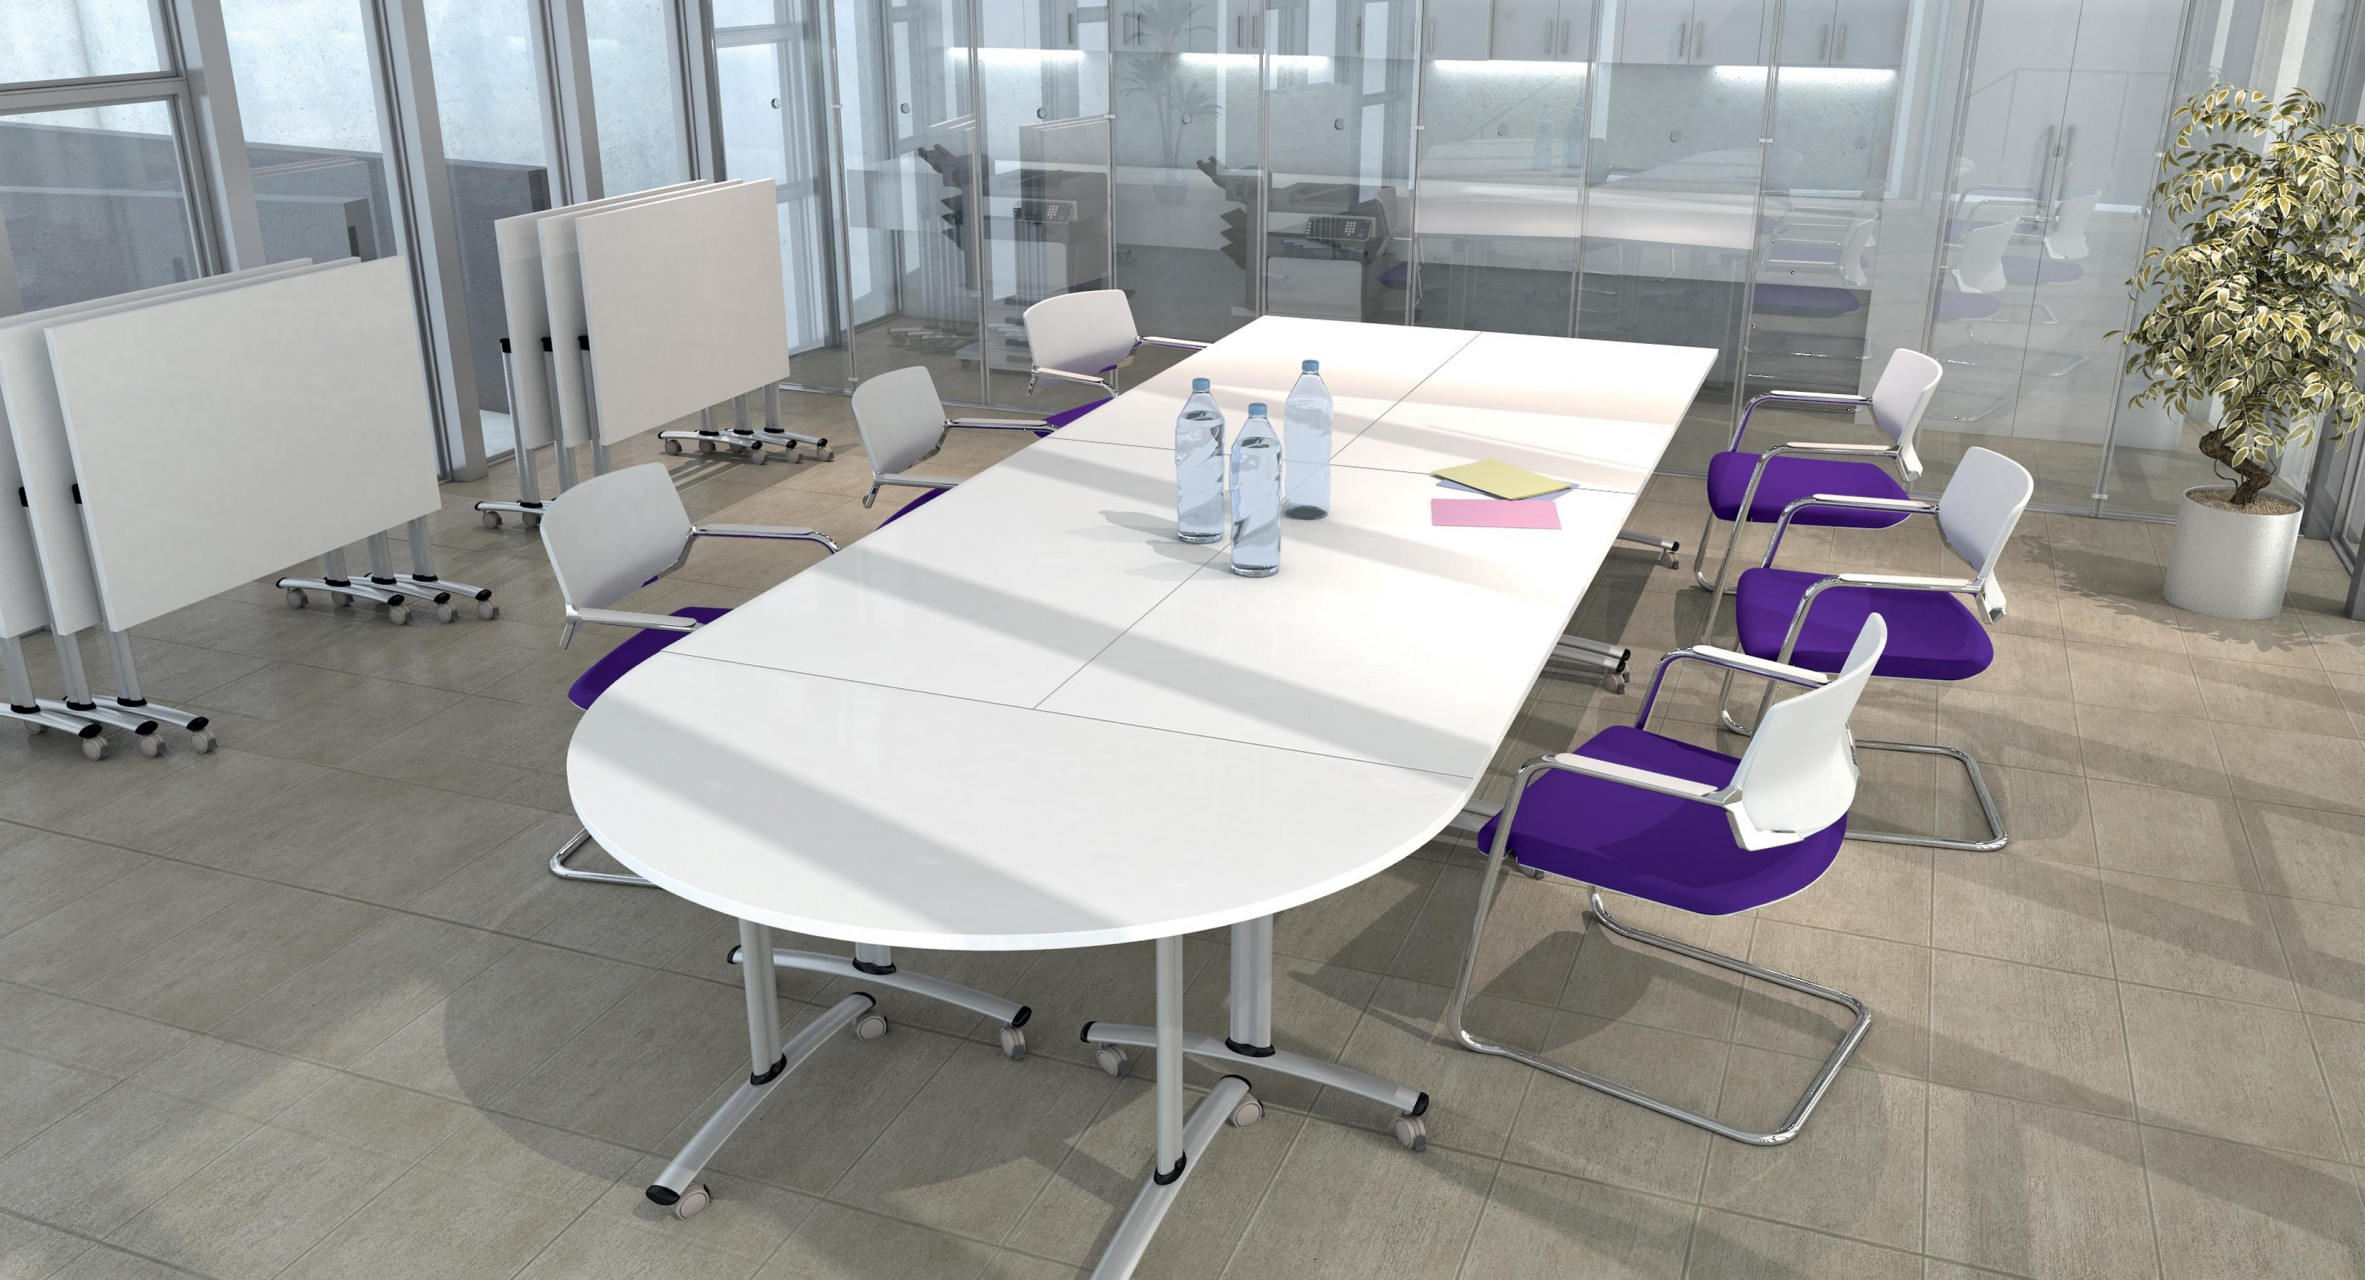 Table De R Union Basculante Abattante 140 Cm Achat Tables De R Union 364 00